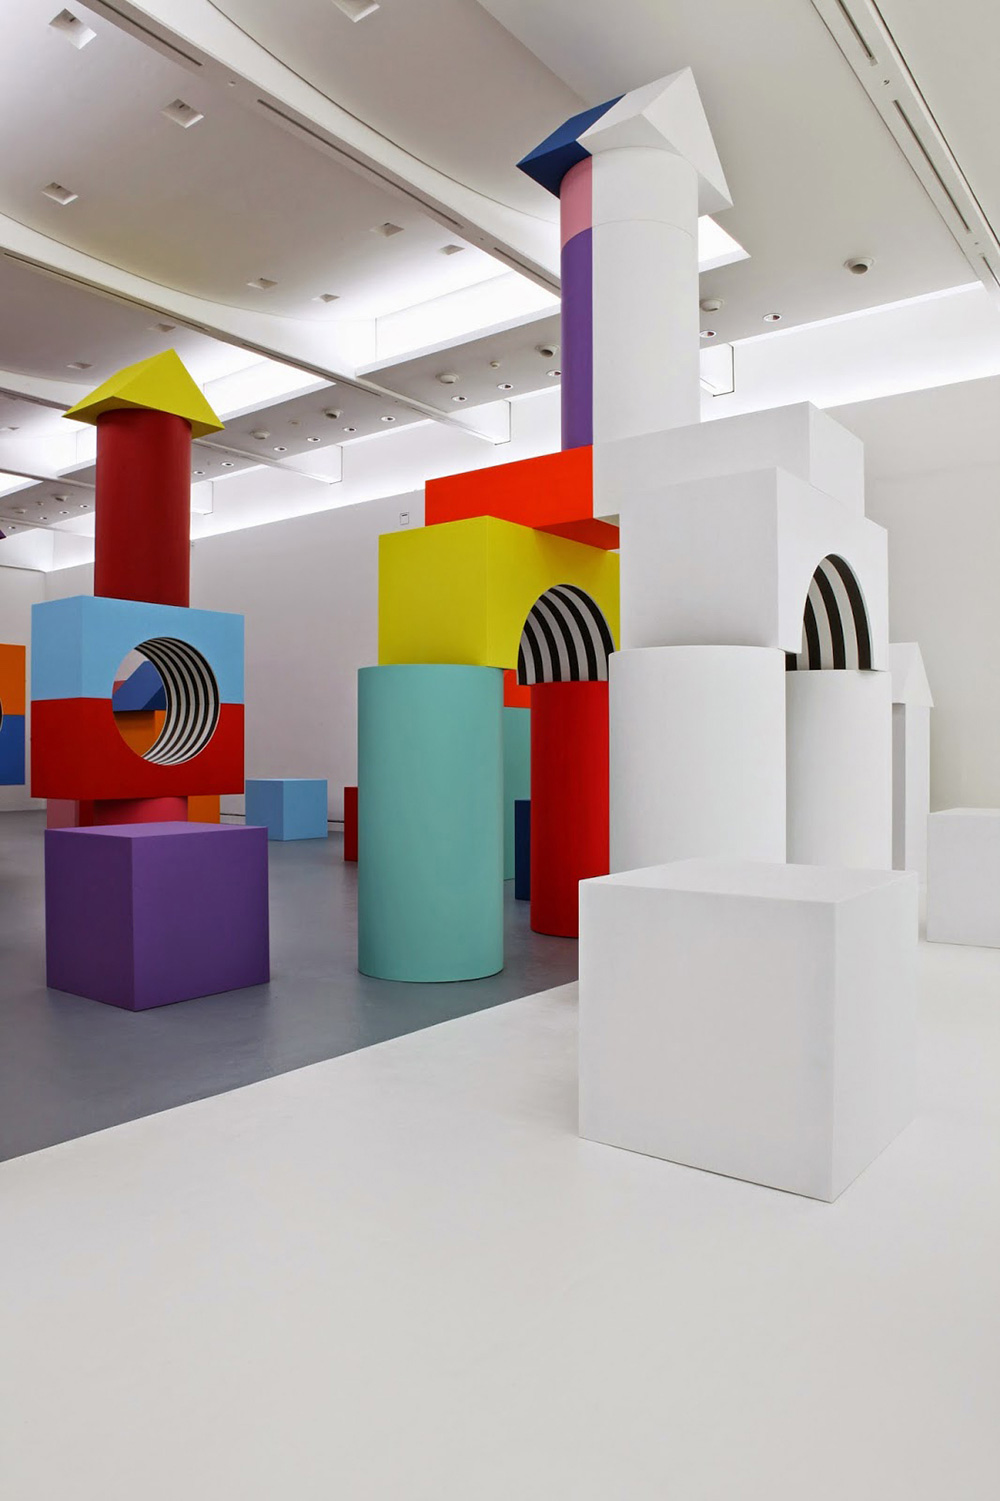 Blocky Art Installation by Daniel Buren Debuts at Museo Madre | Yellowtrace